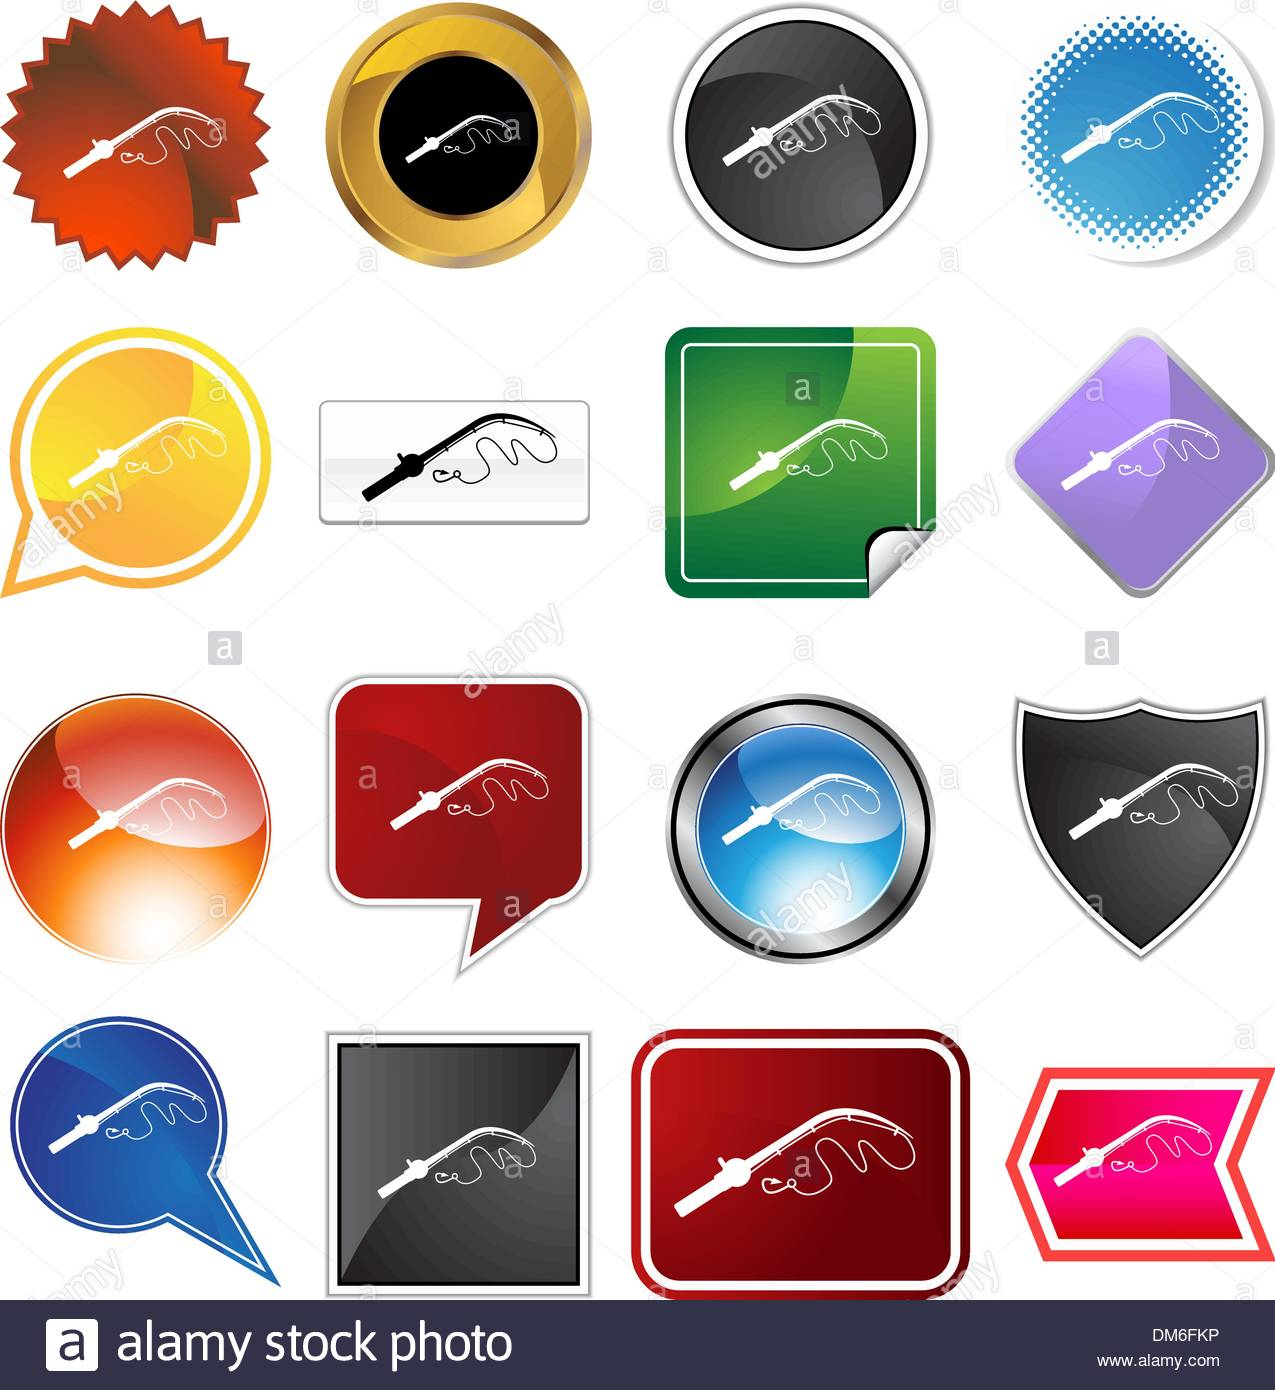 Fishing Pole Stock Vector Images - Alamy